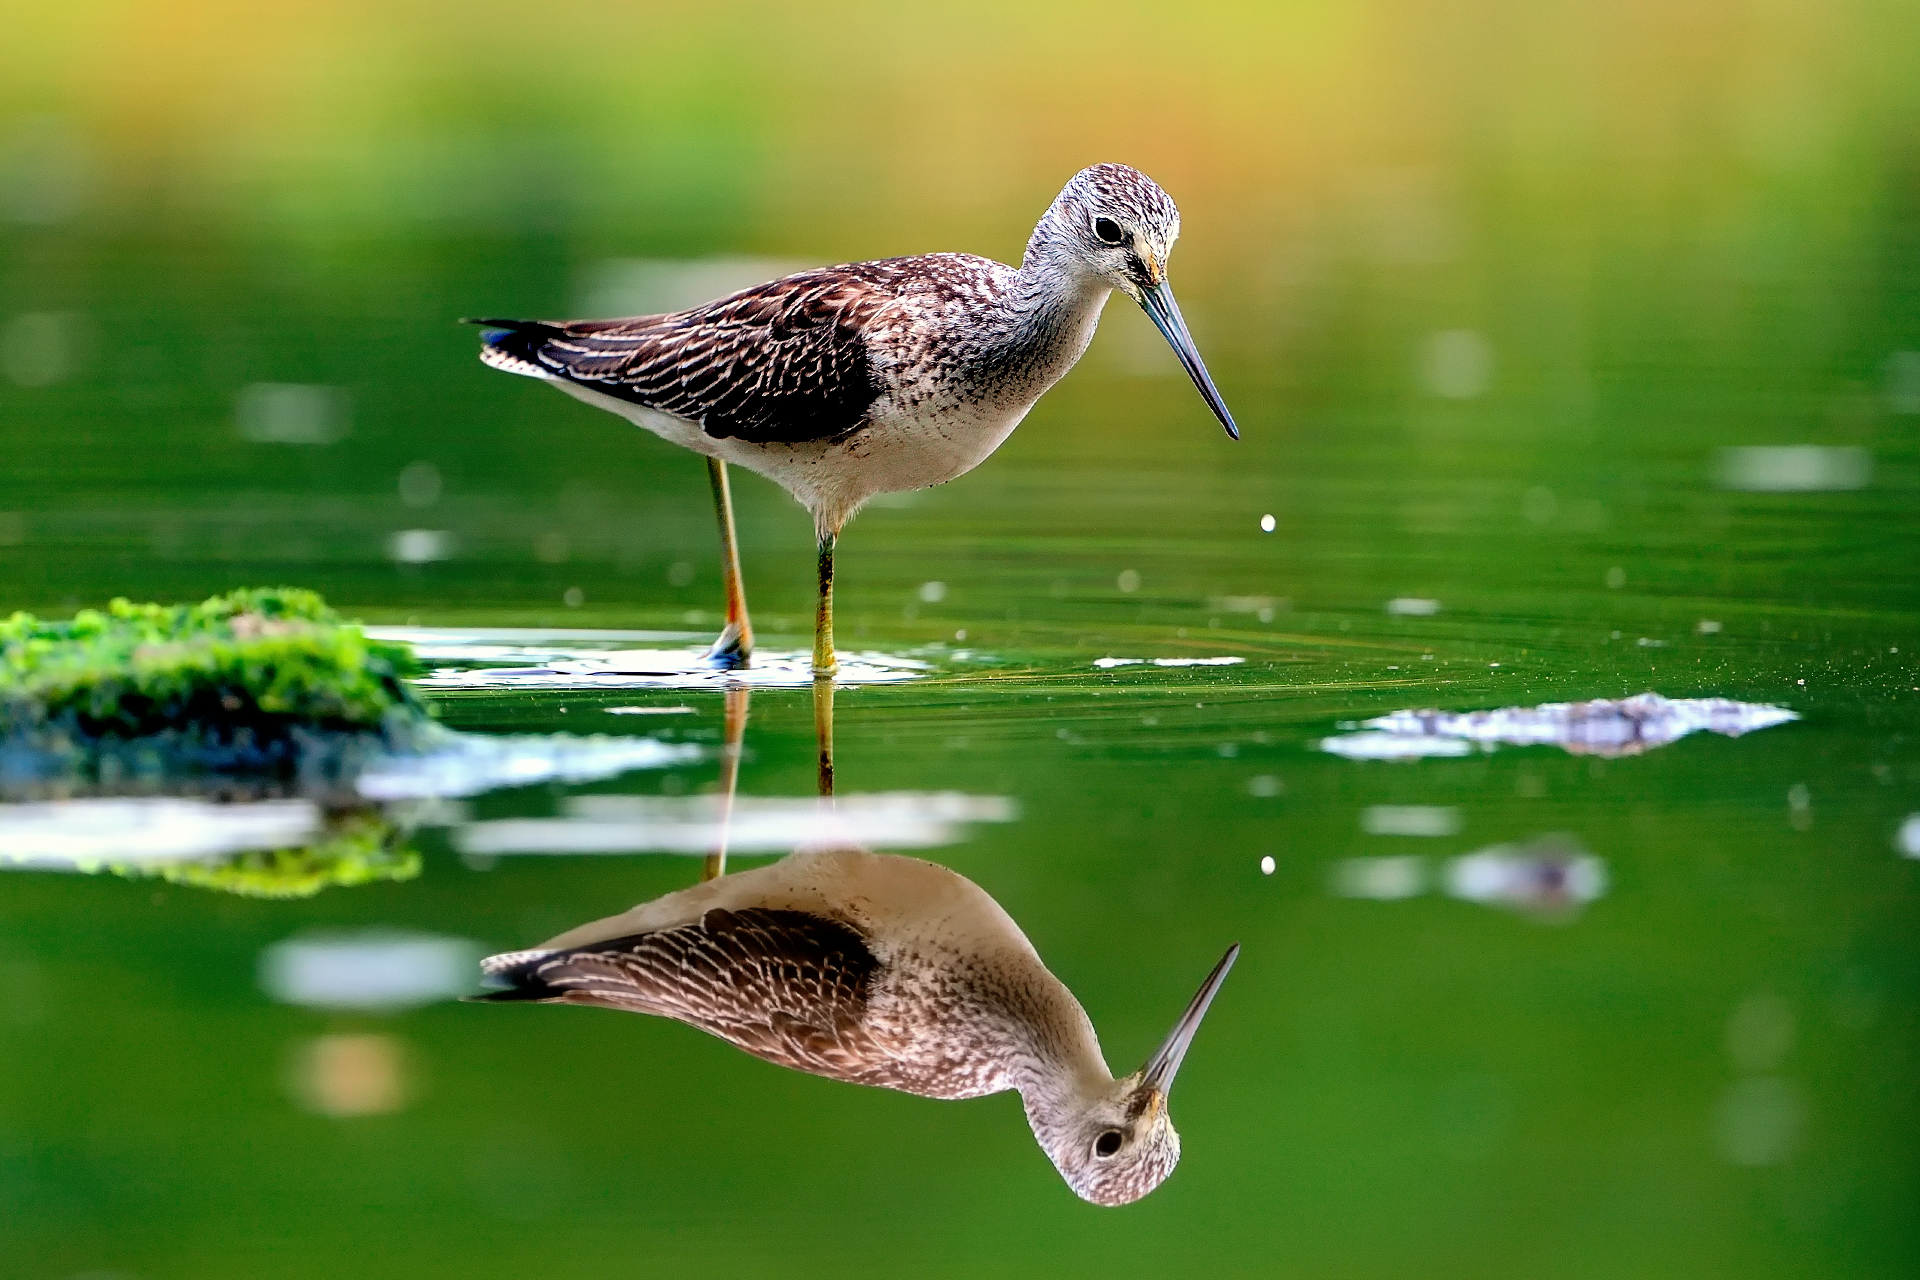 Nature animal bird water reflection green hd wallpapers wallpaper